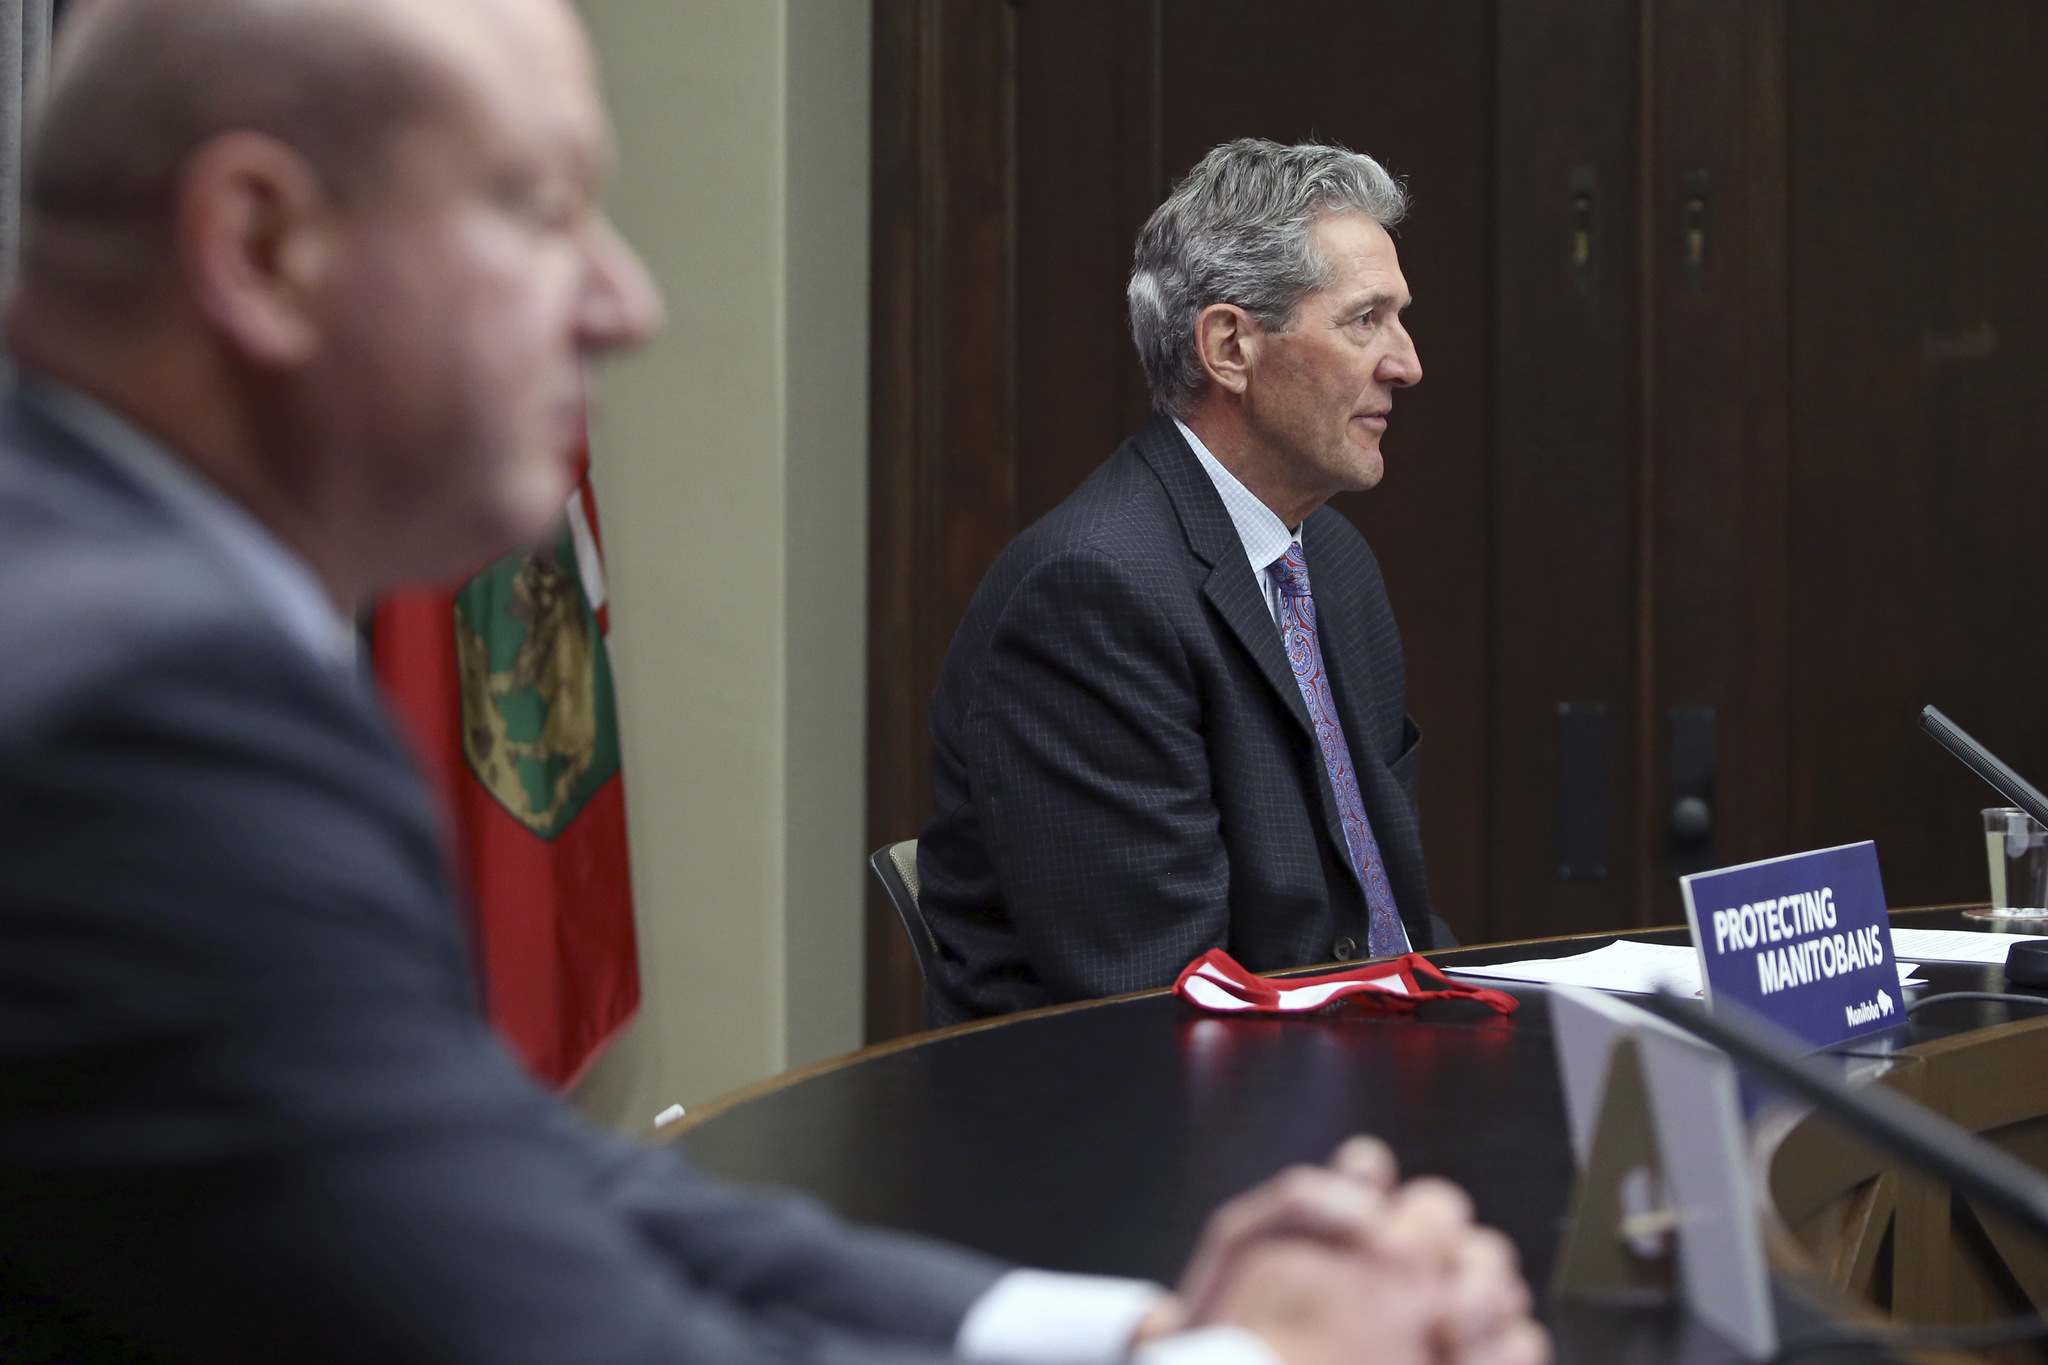 """""""These changes… are cautious changes, and they are designed to help us move in the direction of protecting and safeguarding the well-being of Manitobans, in all respects,"""" said Premier Brian Pallister. (Kevin King / Pool)"""